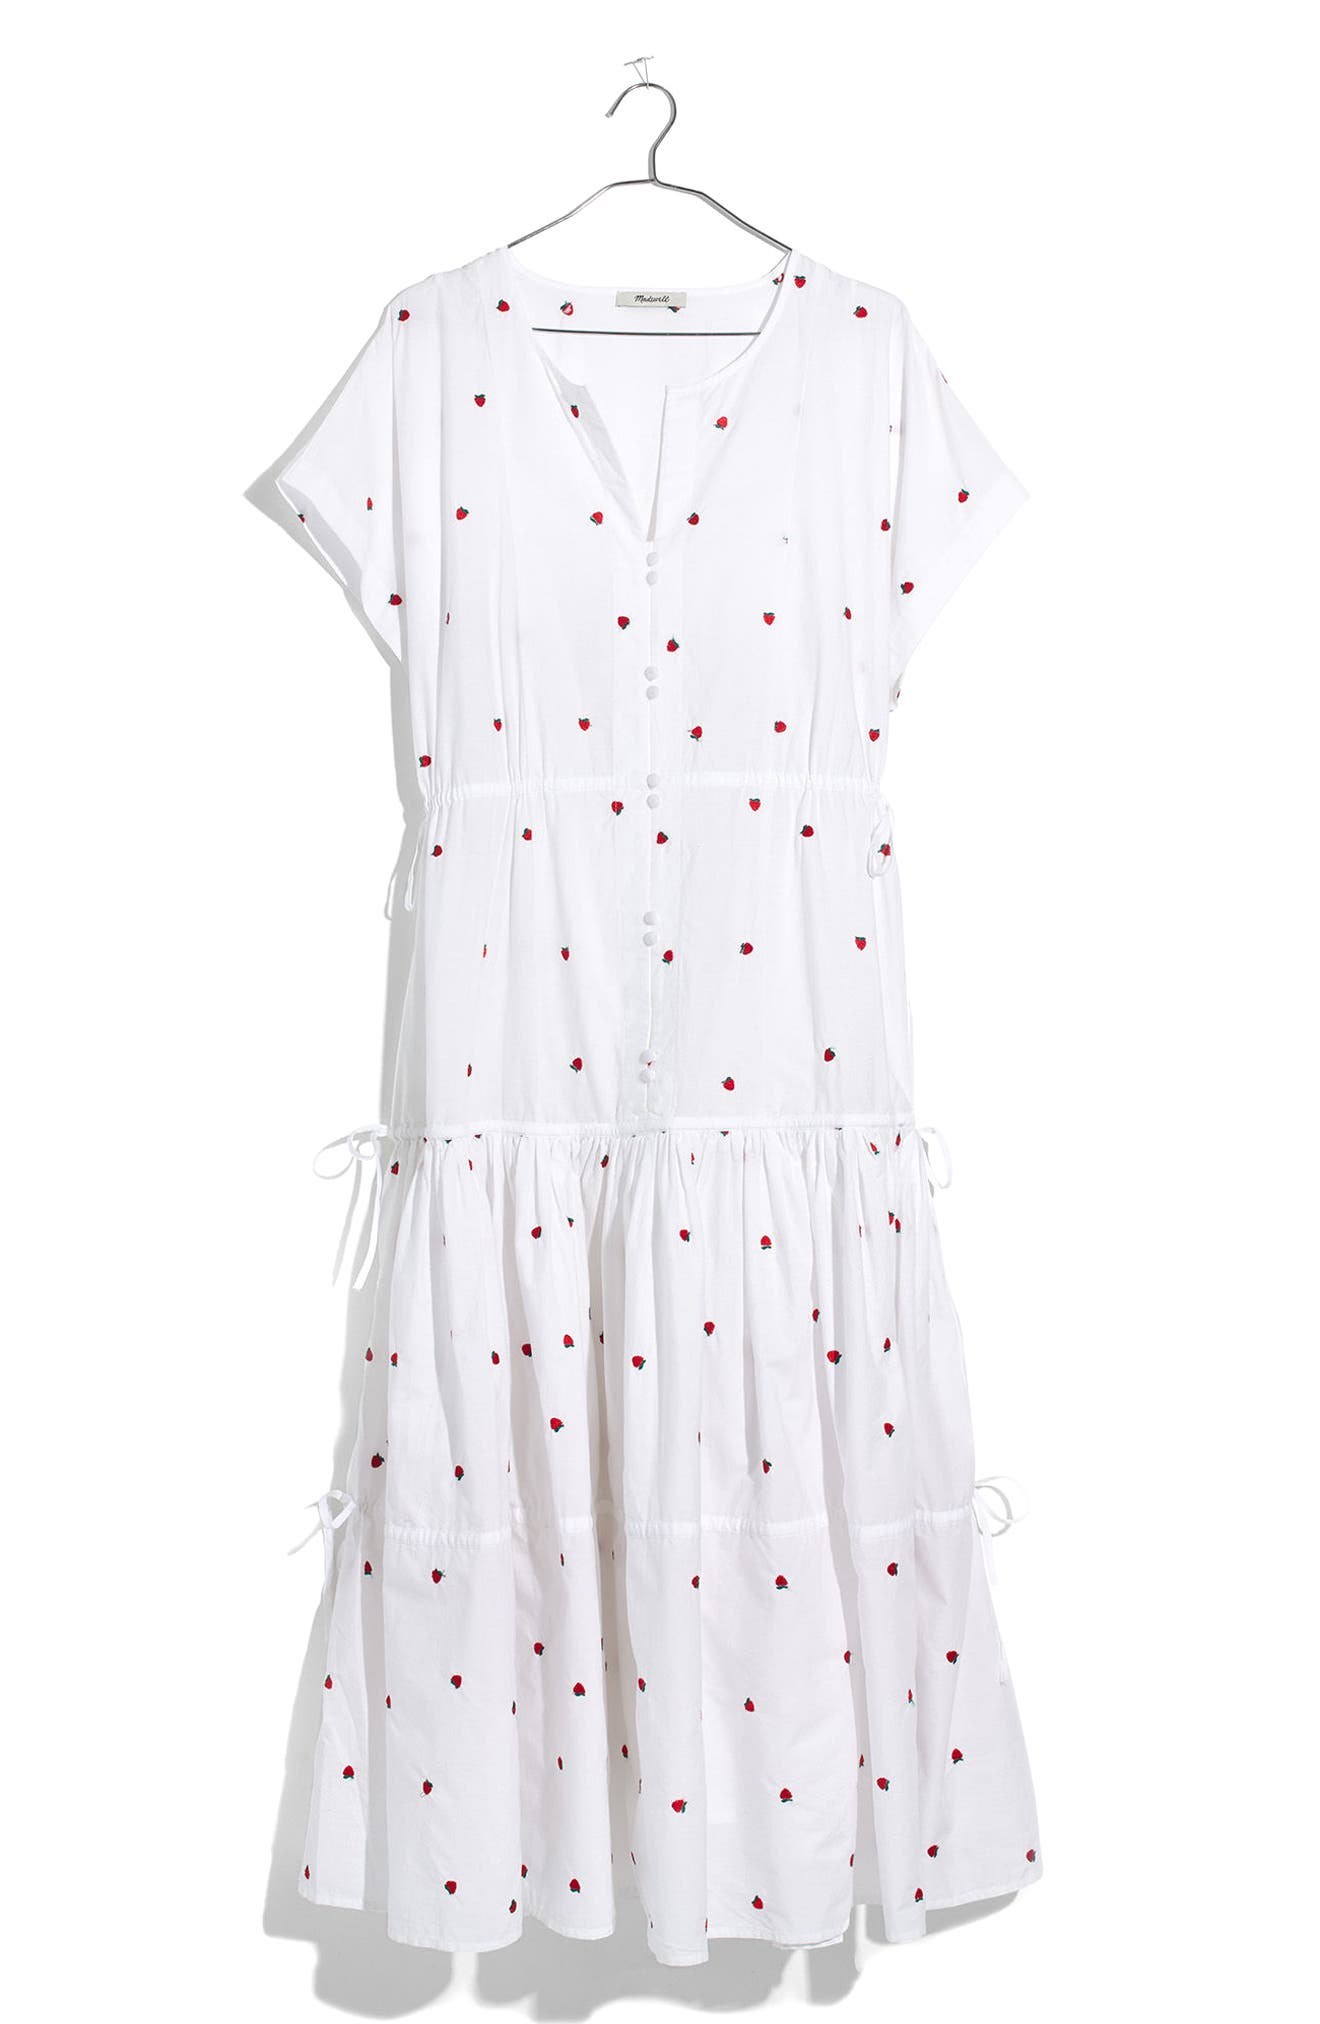 MADEWELL,                             Embroidered Strawberry Tiered Midi Dress,                             Alternate thumbnail 4, color,                             100